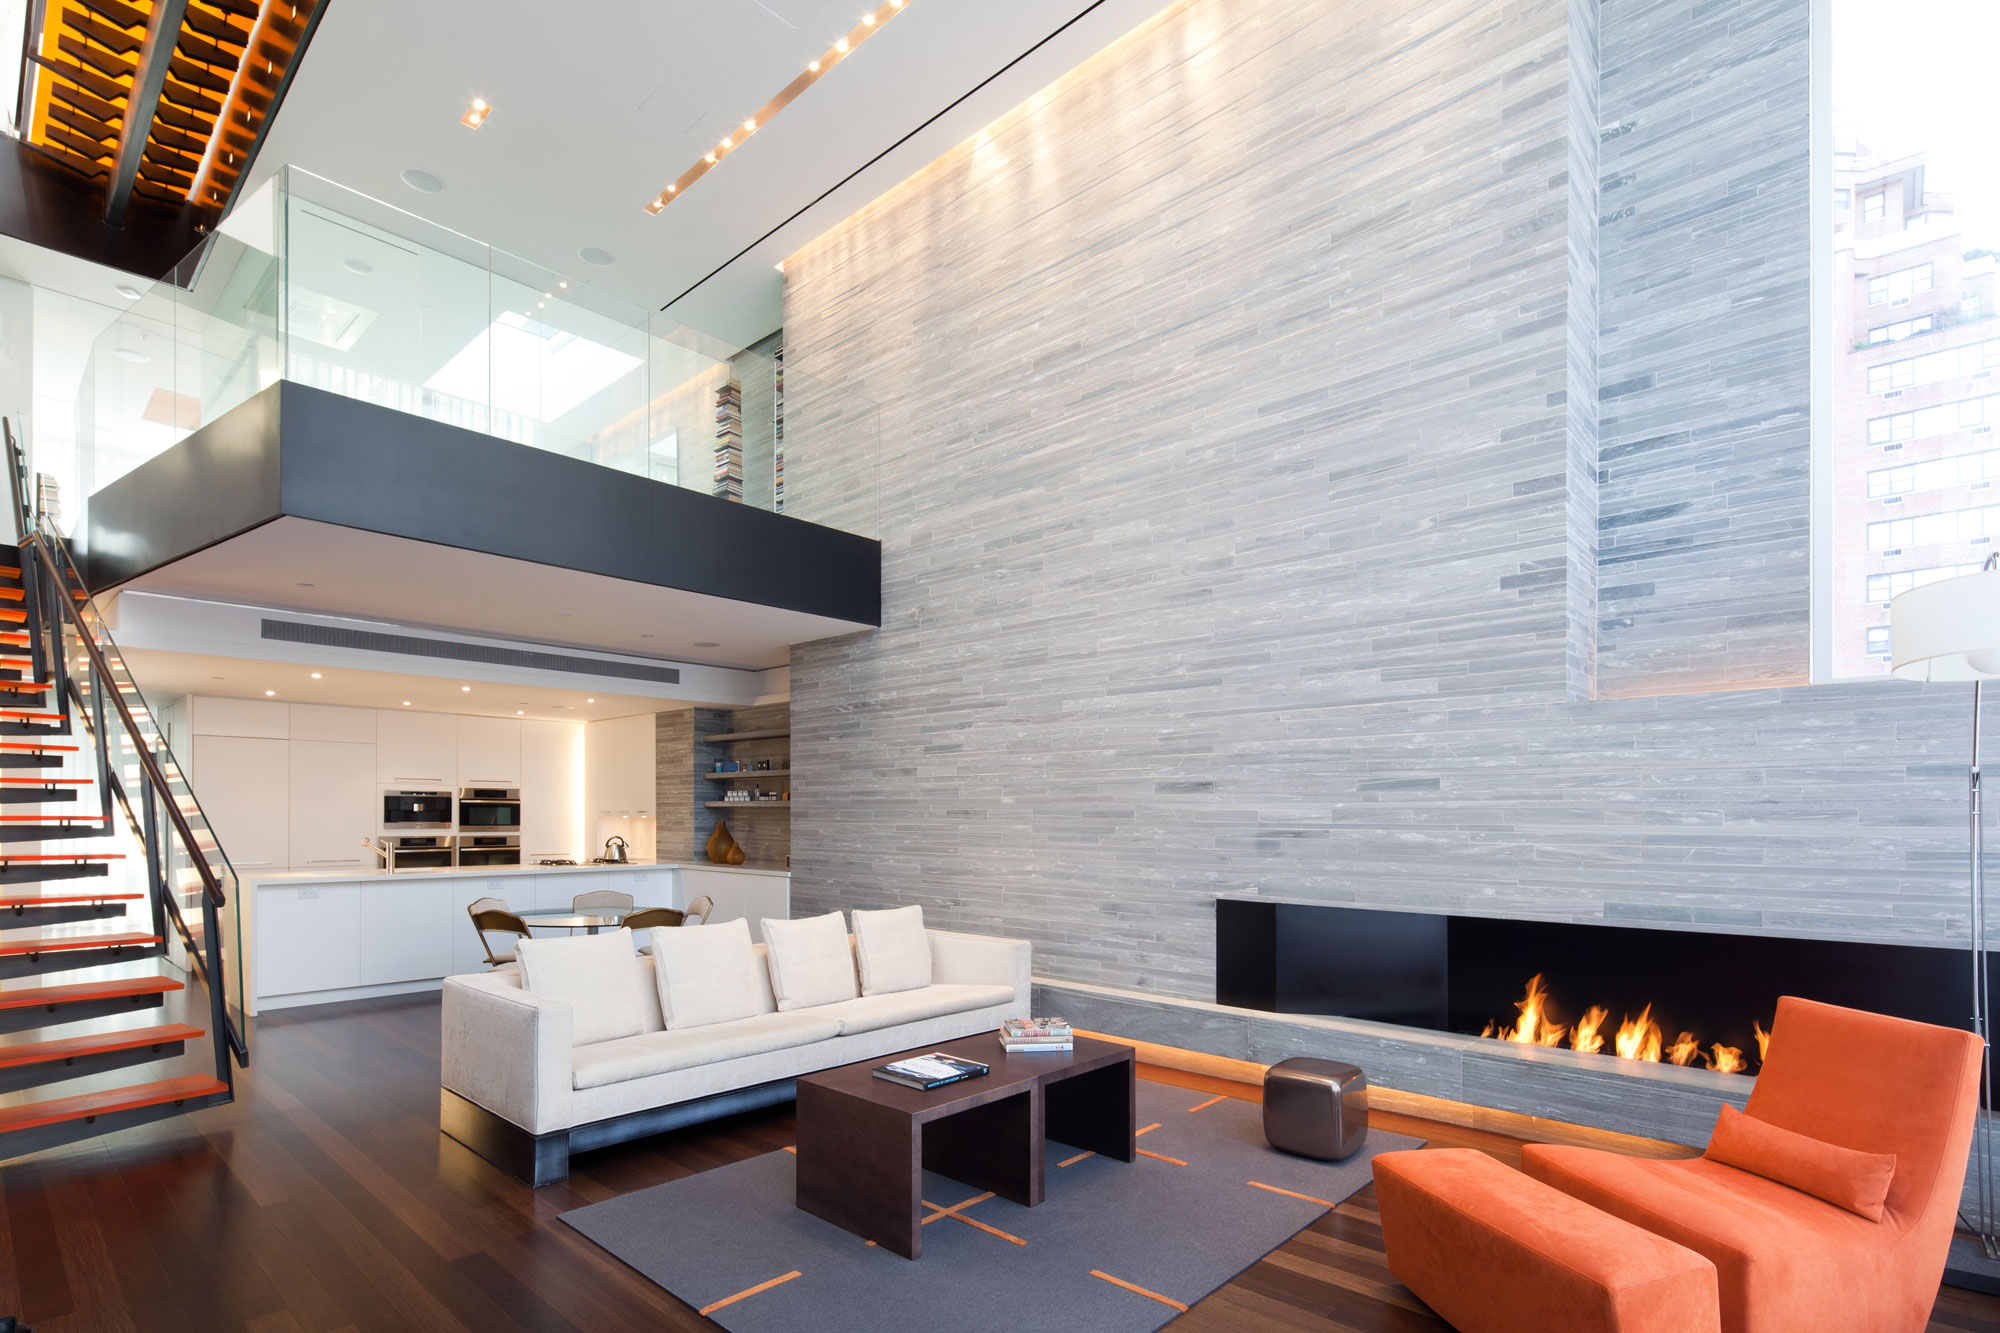 73rd St Penthouse by Turett Collaborative Architects